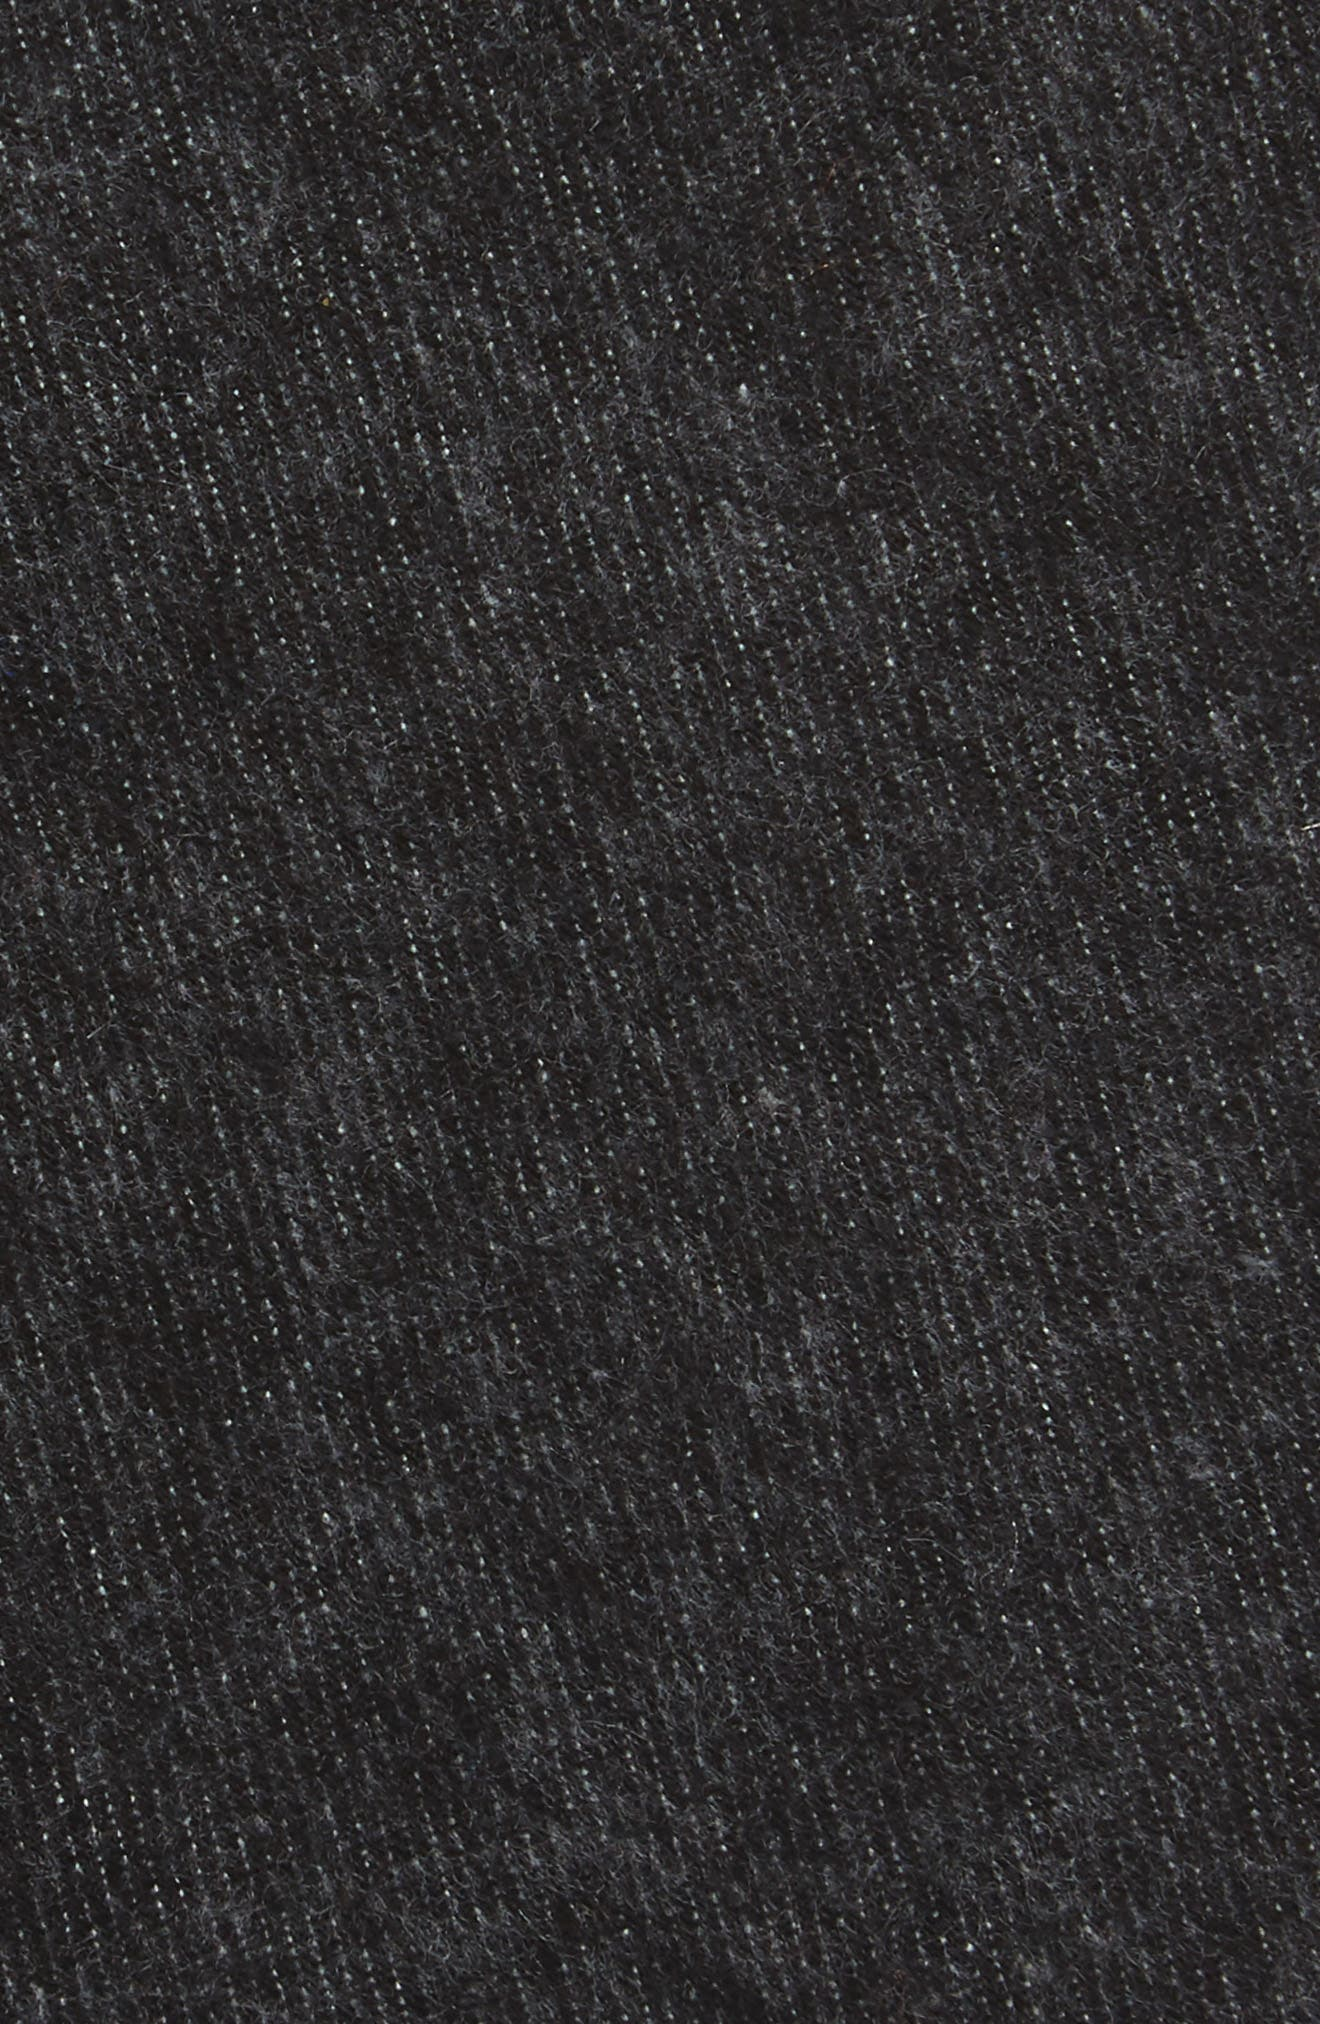 Bowery Solid Cotton Blend Skinny Tie,                             Alternate thumbnail 2, color,                             001